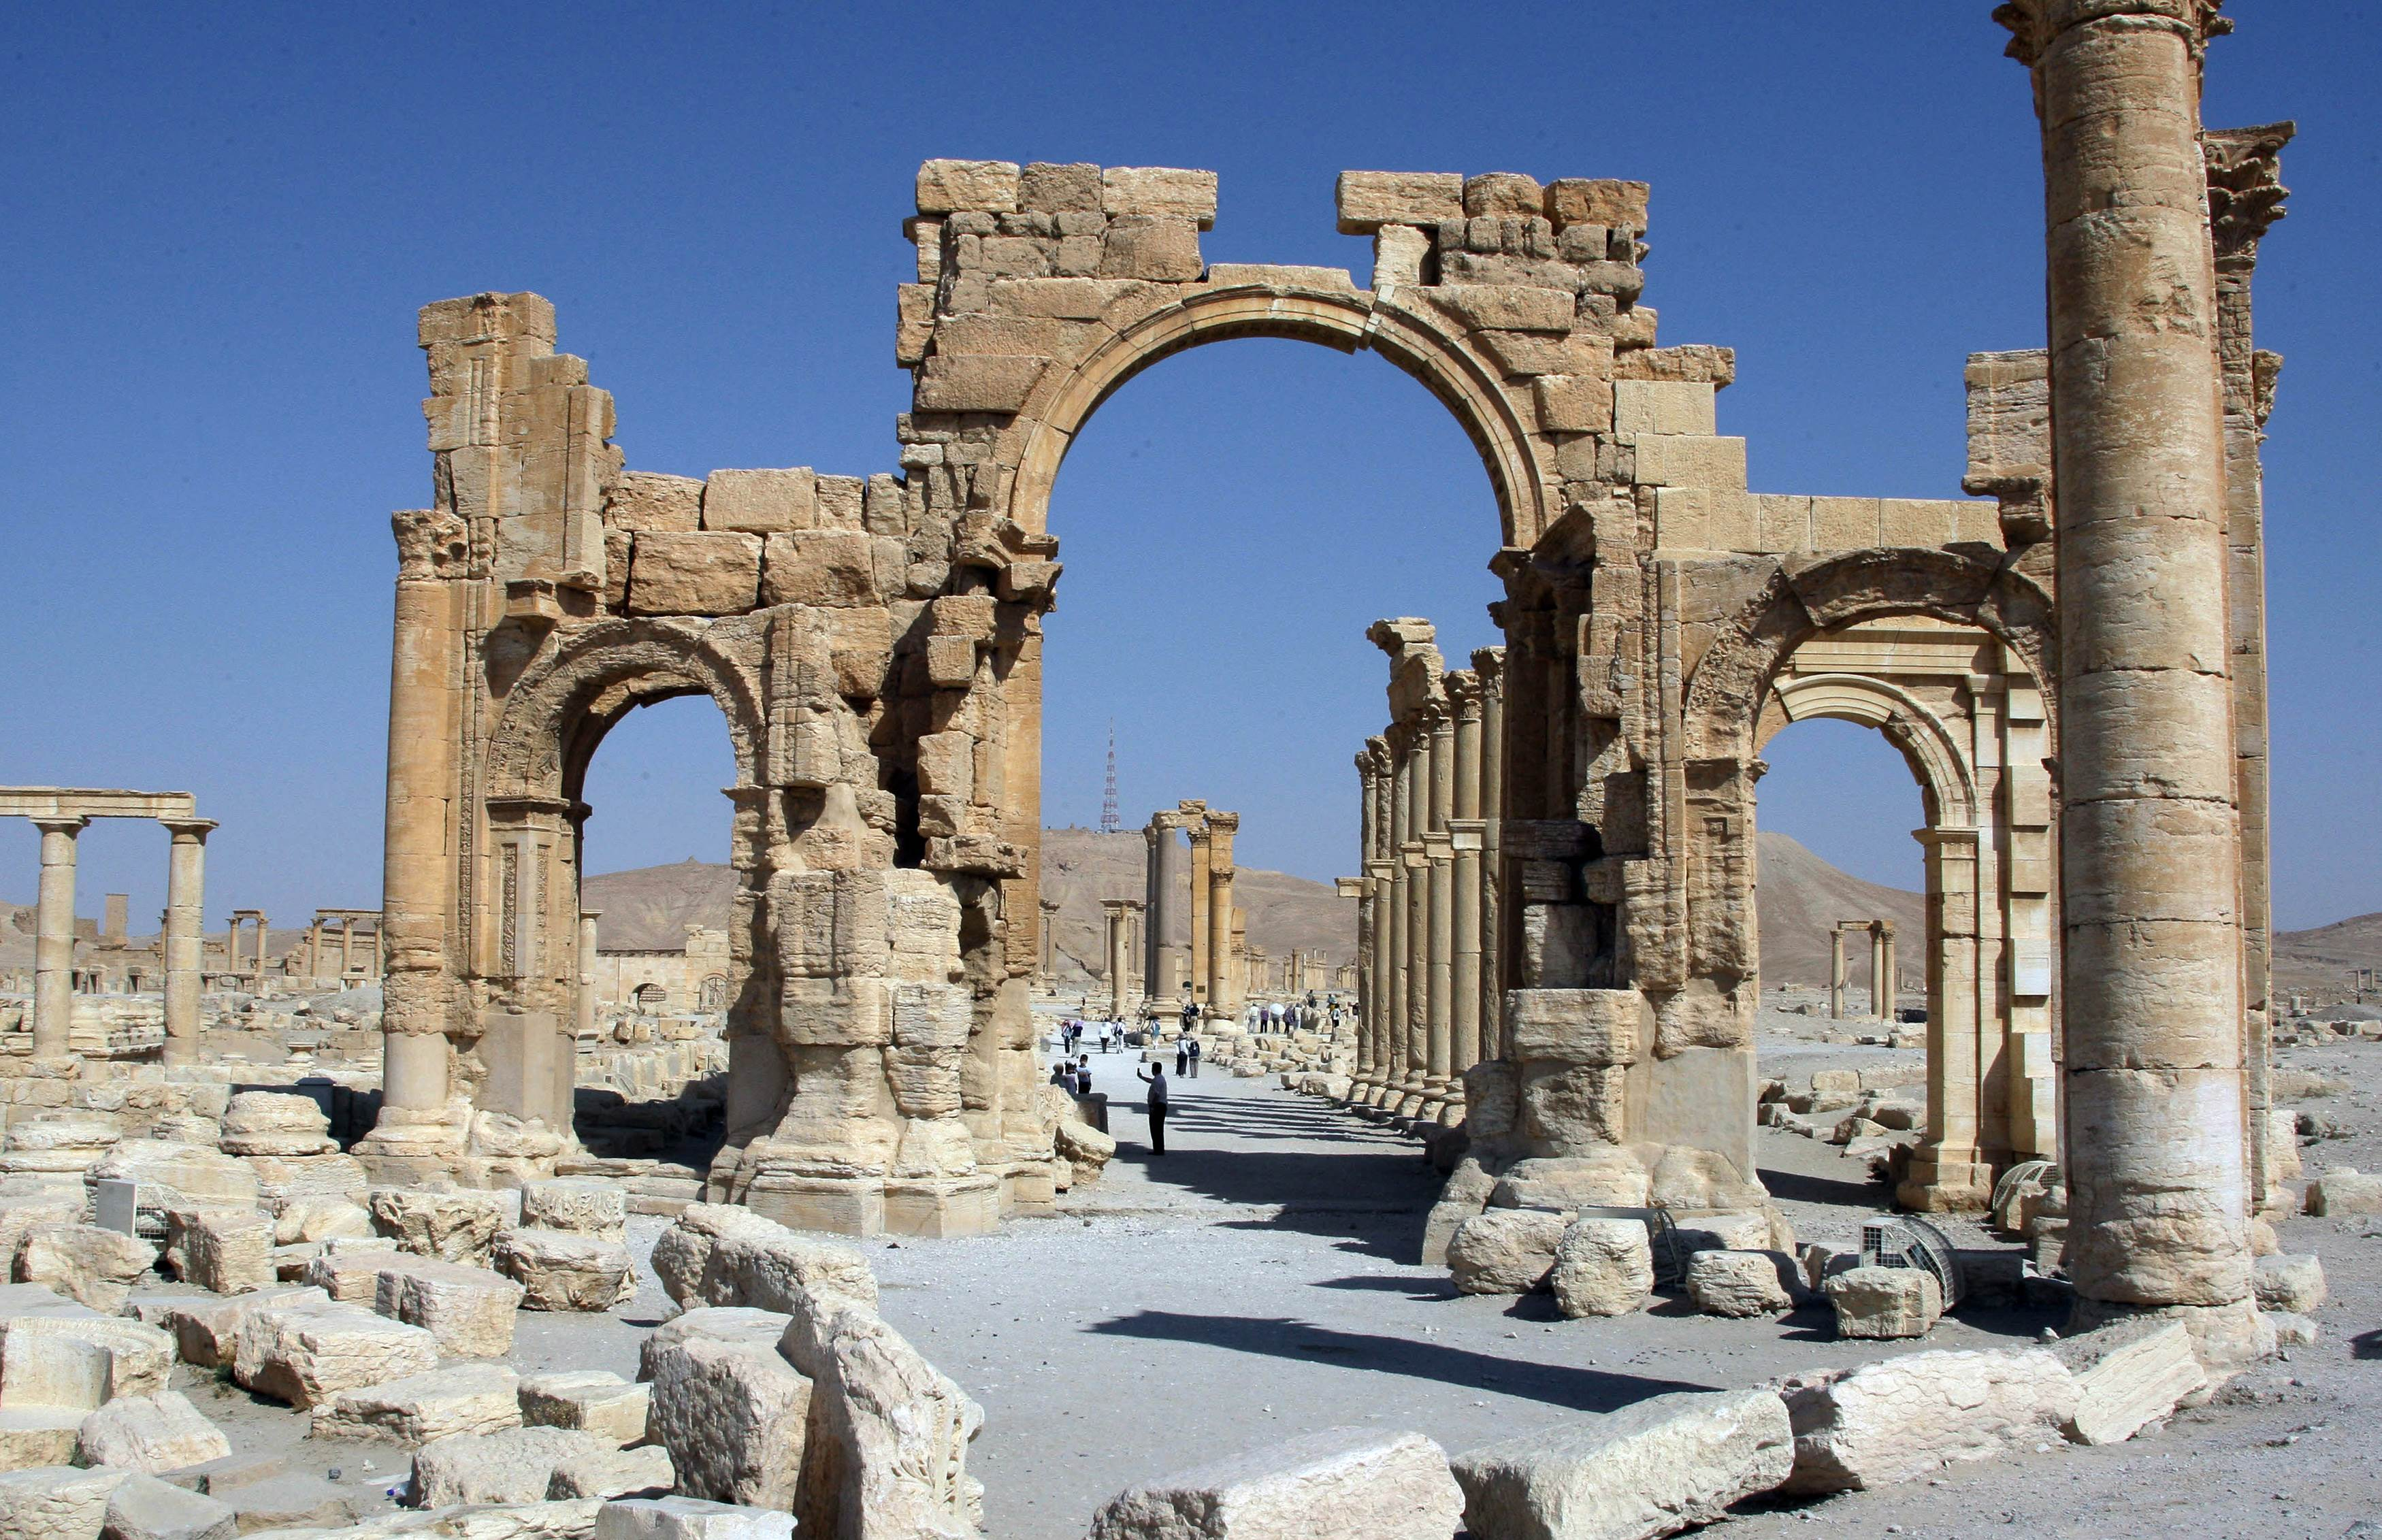 the Arch of Triumph, a major Roman monument in the ancient city of Palmyra.